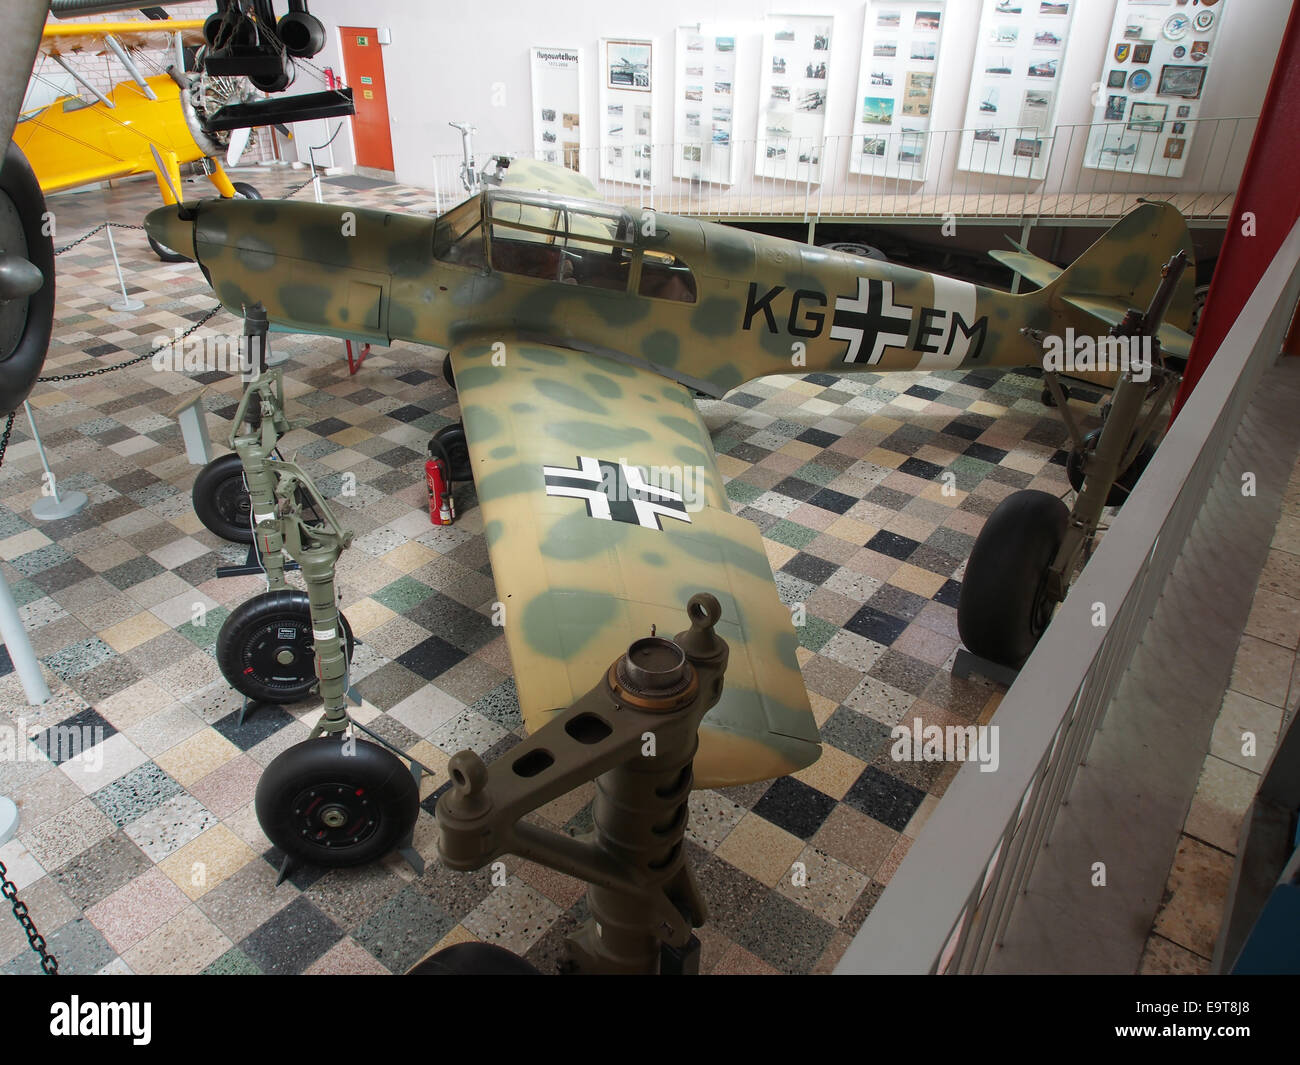 Nord 1002 - German Air Force KG EM at Flugausstellung Hermeskeil, pic3a - Stock Image